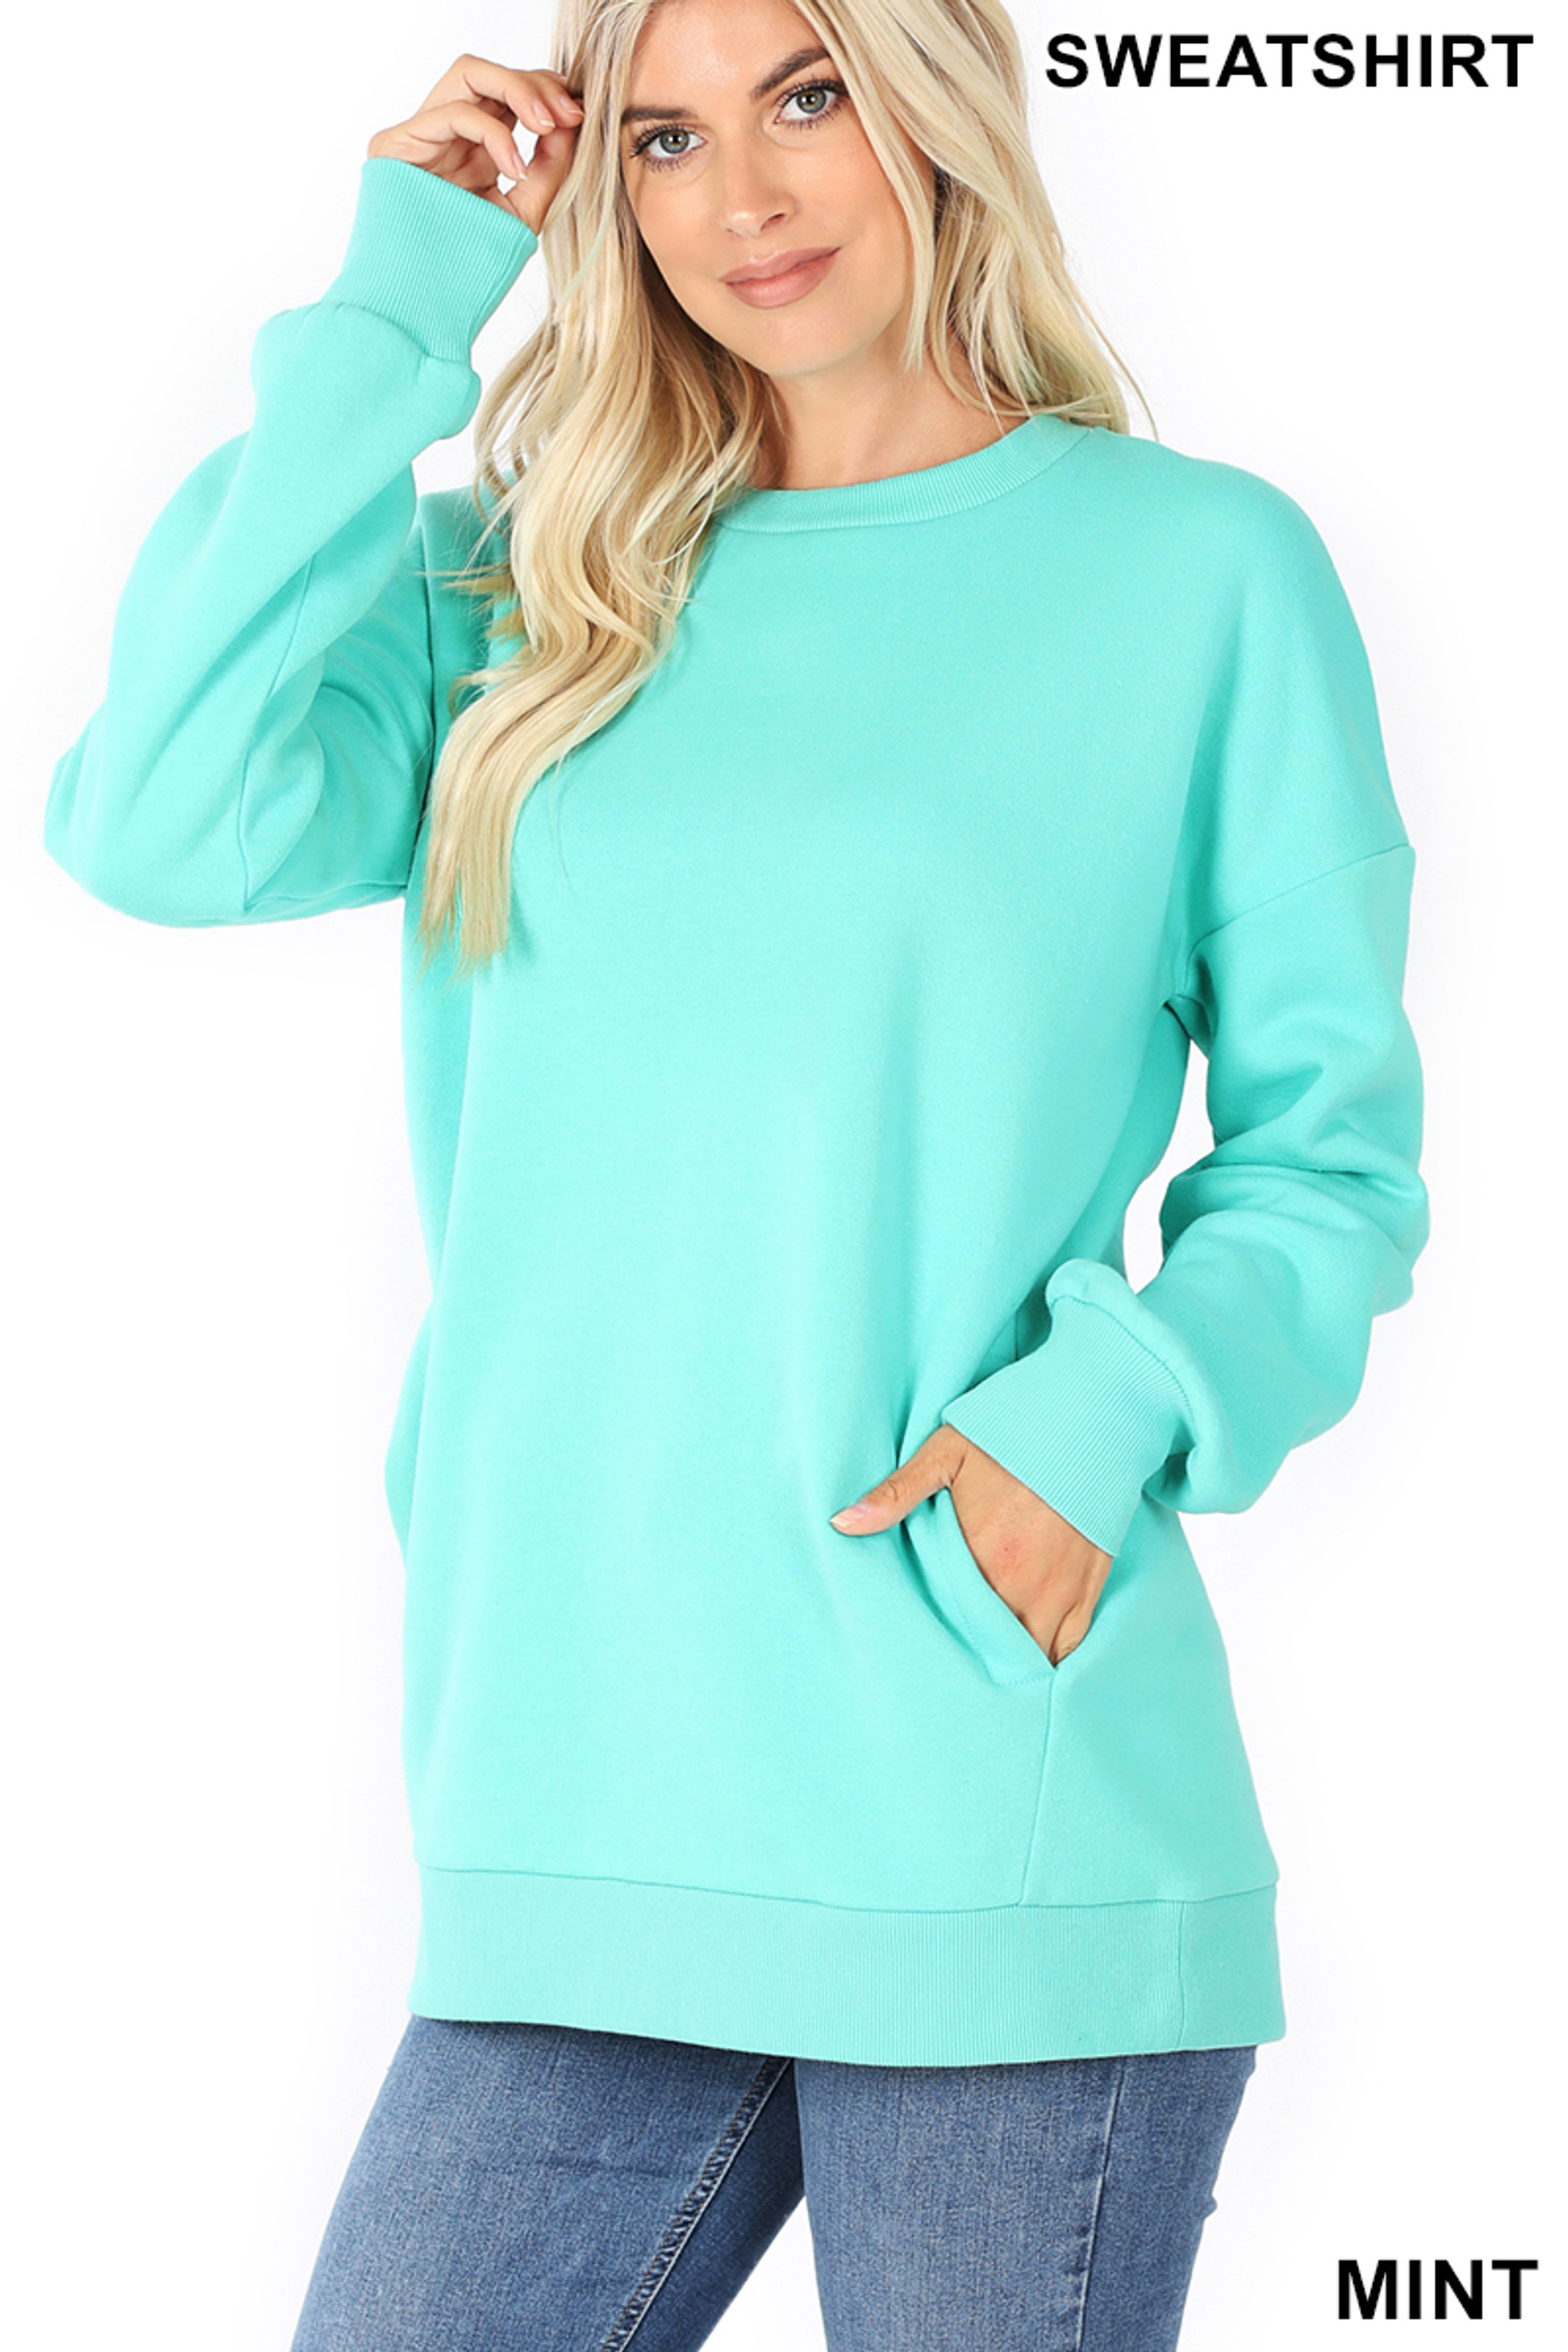 Slightly turned image of Mint Round Crew Neck Sweatshirt with Side Pockets